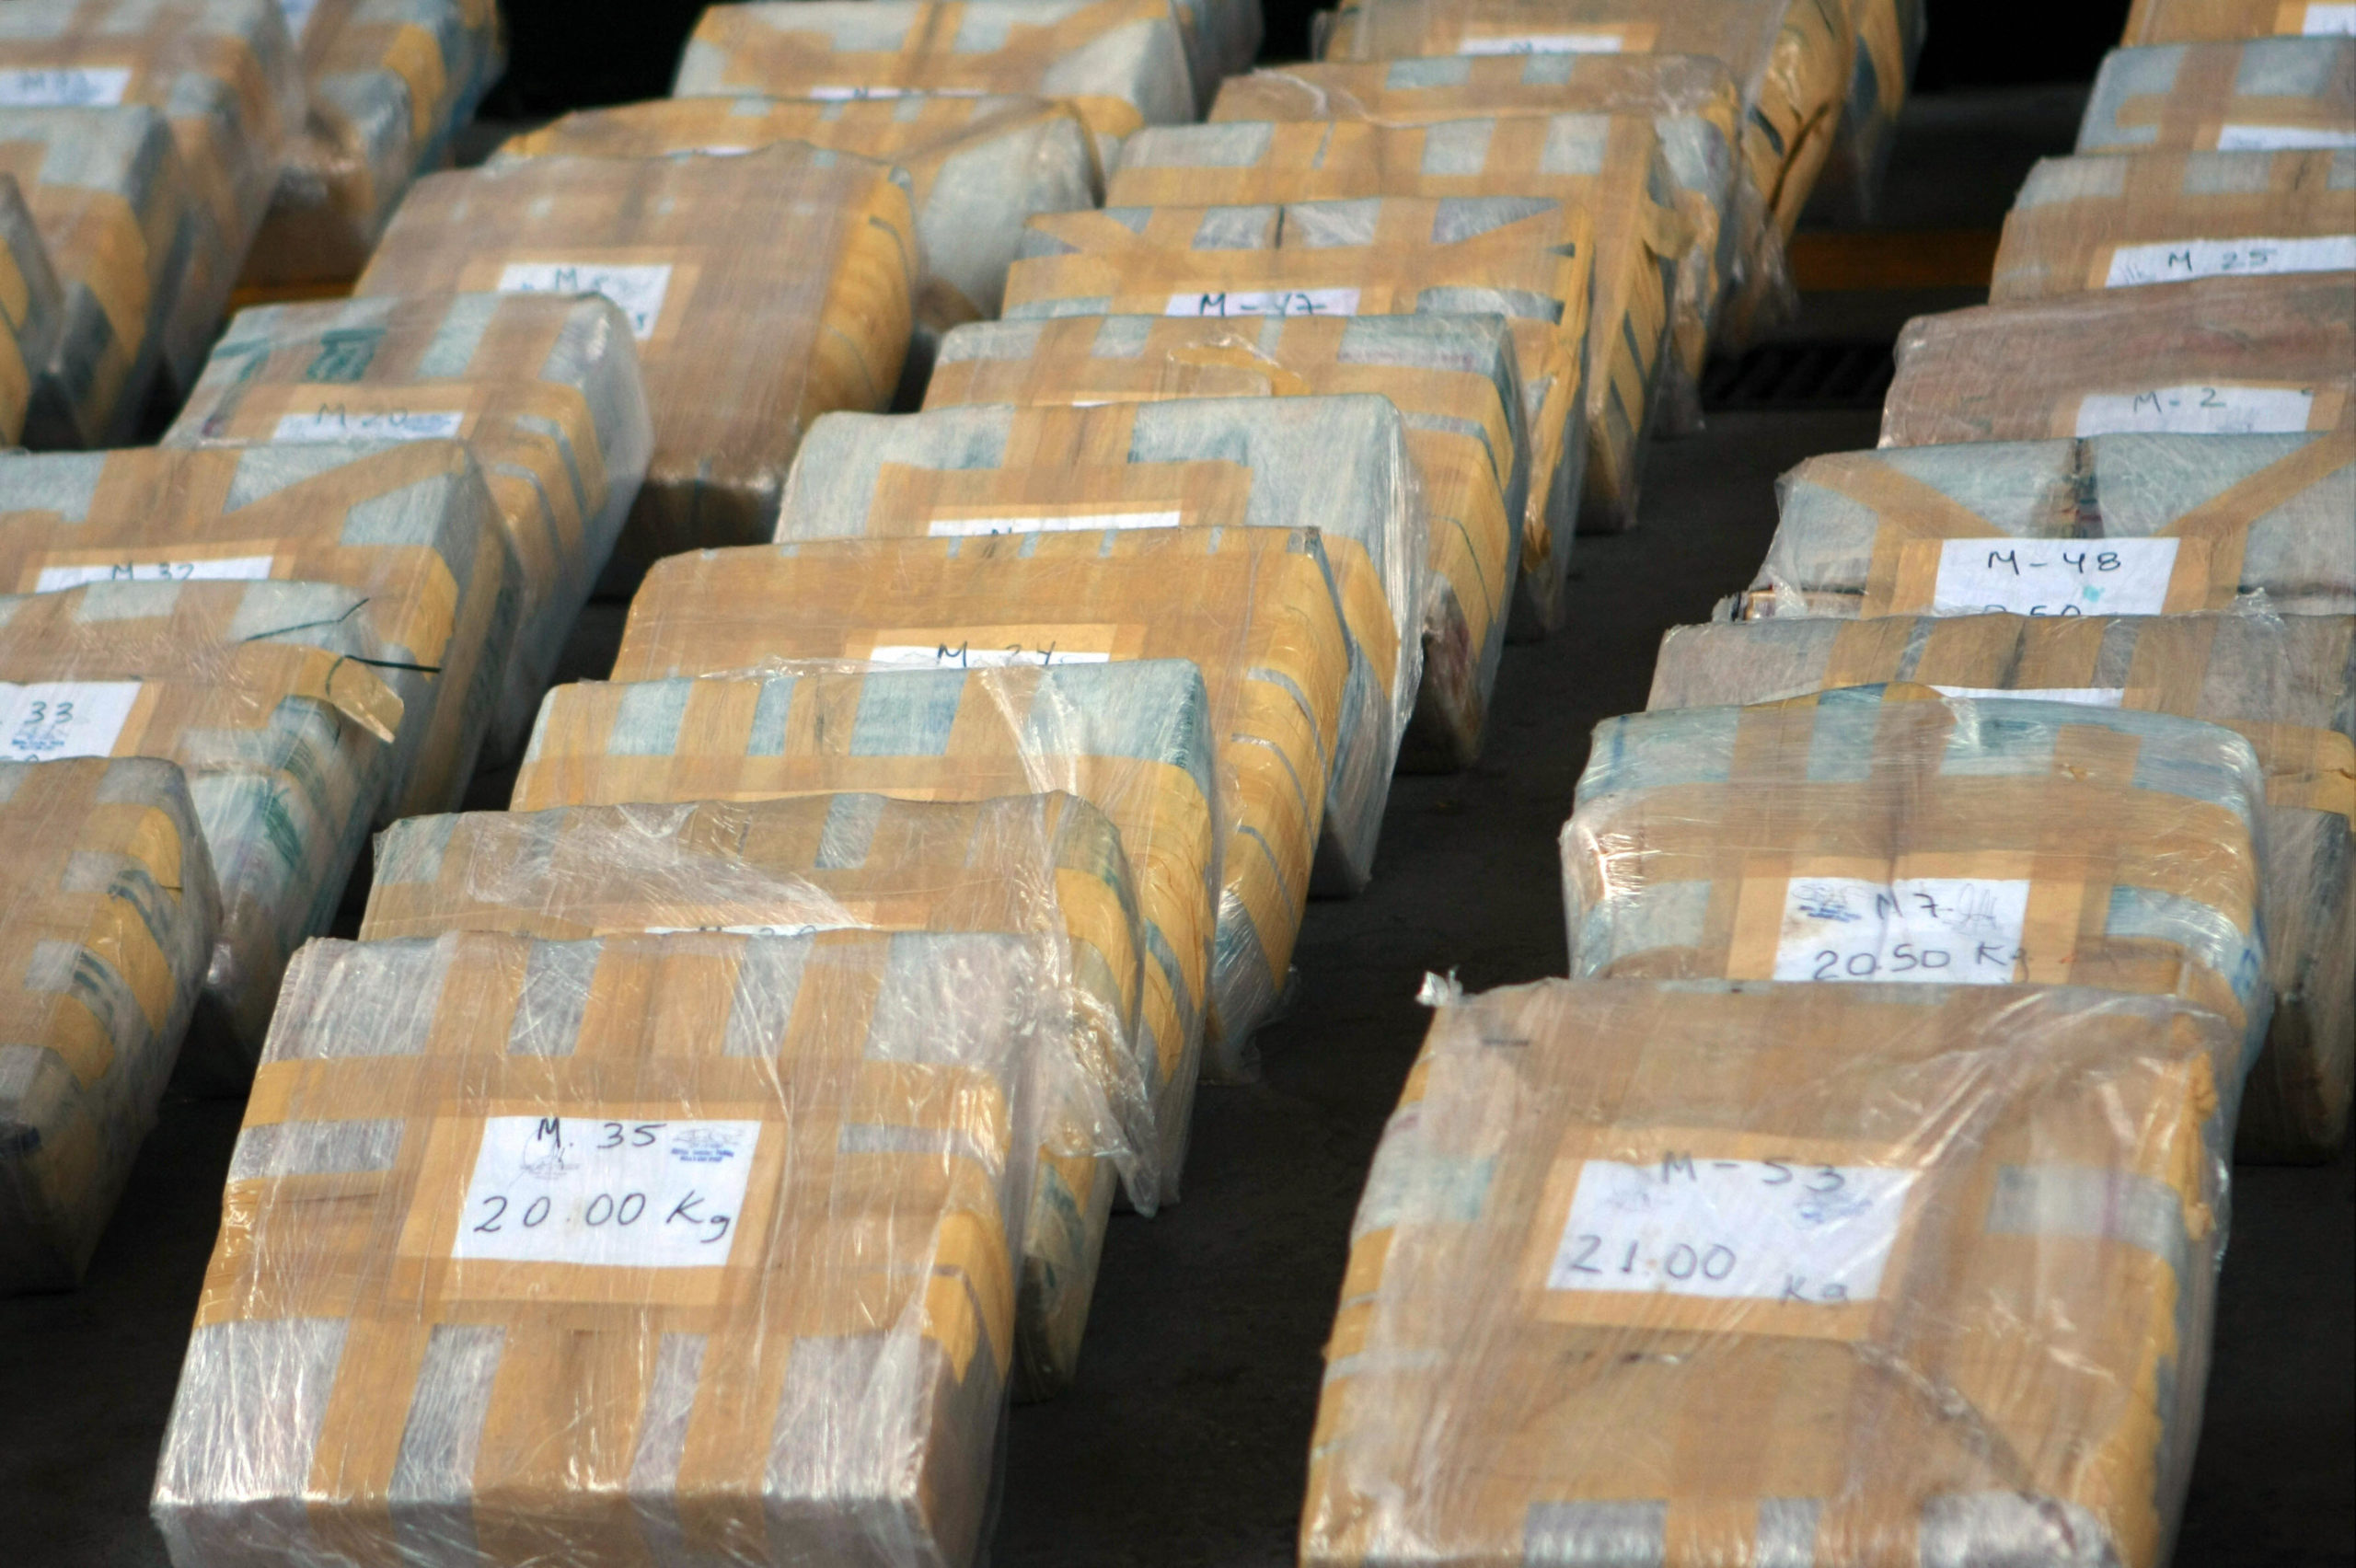 Picture of packages containing around 1,500 kilos of cocaine presented to the press by Peru's National Police Anti-Drug Directorate (DIRANDRO) on March 10, 2008. (Photo credit should read ERNESTO BENAVIDES/AFP via Getty Images)